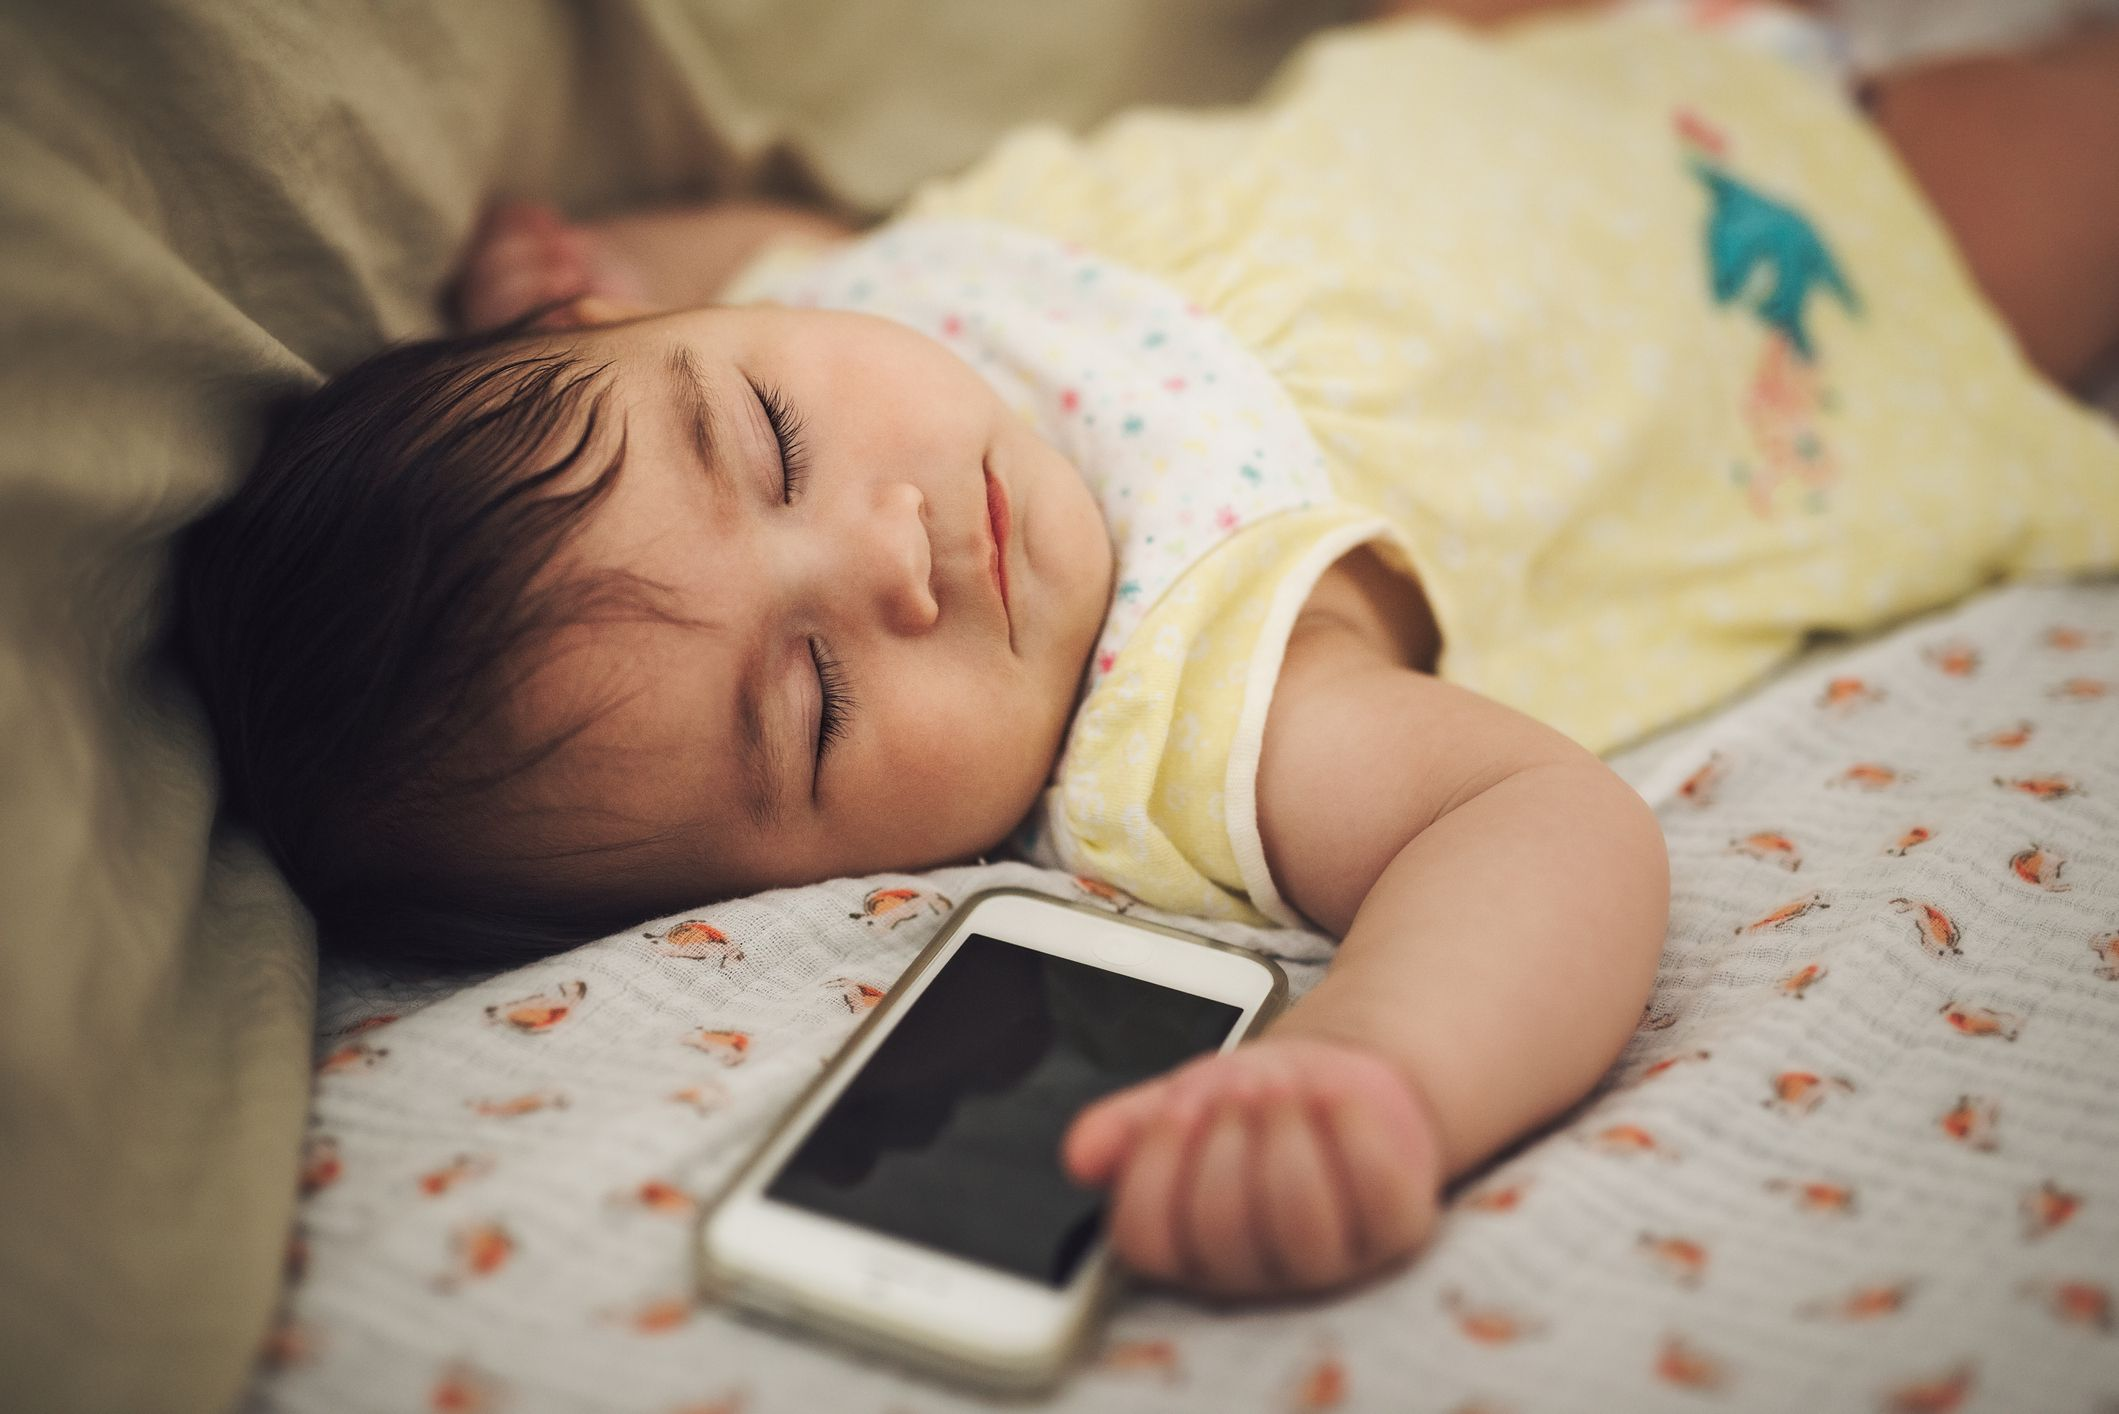 The 9 Best White Noise Apps for Babies in 2020